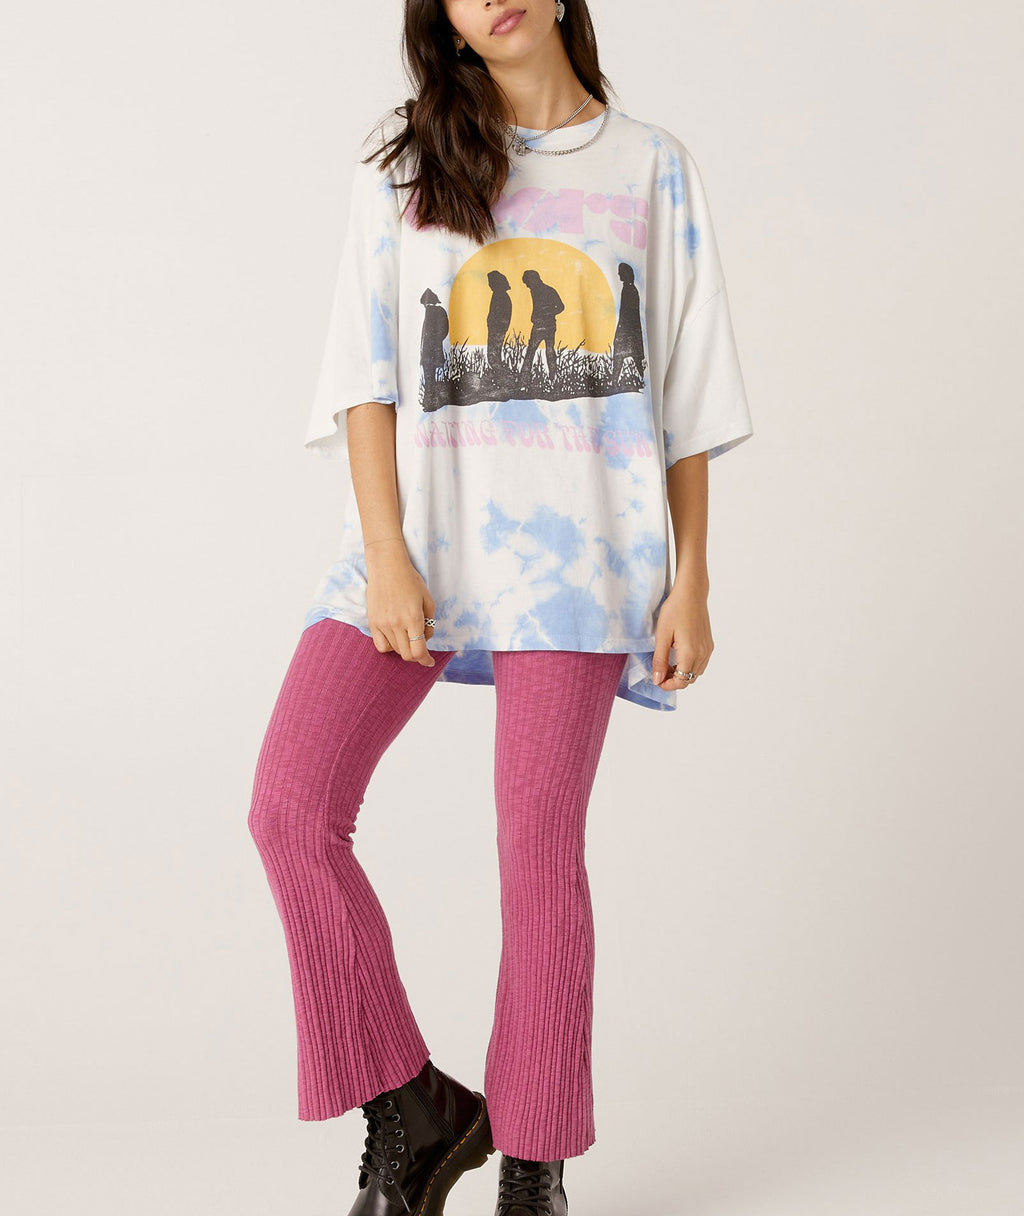 Daydreamer Women The Doors Waiting For the Sun Periwinkle Tee